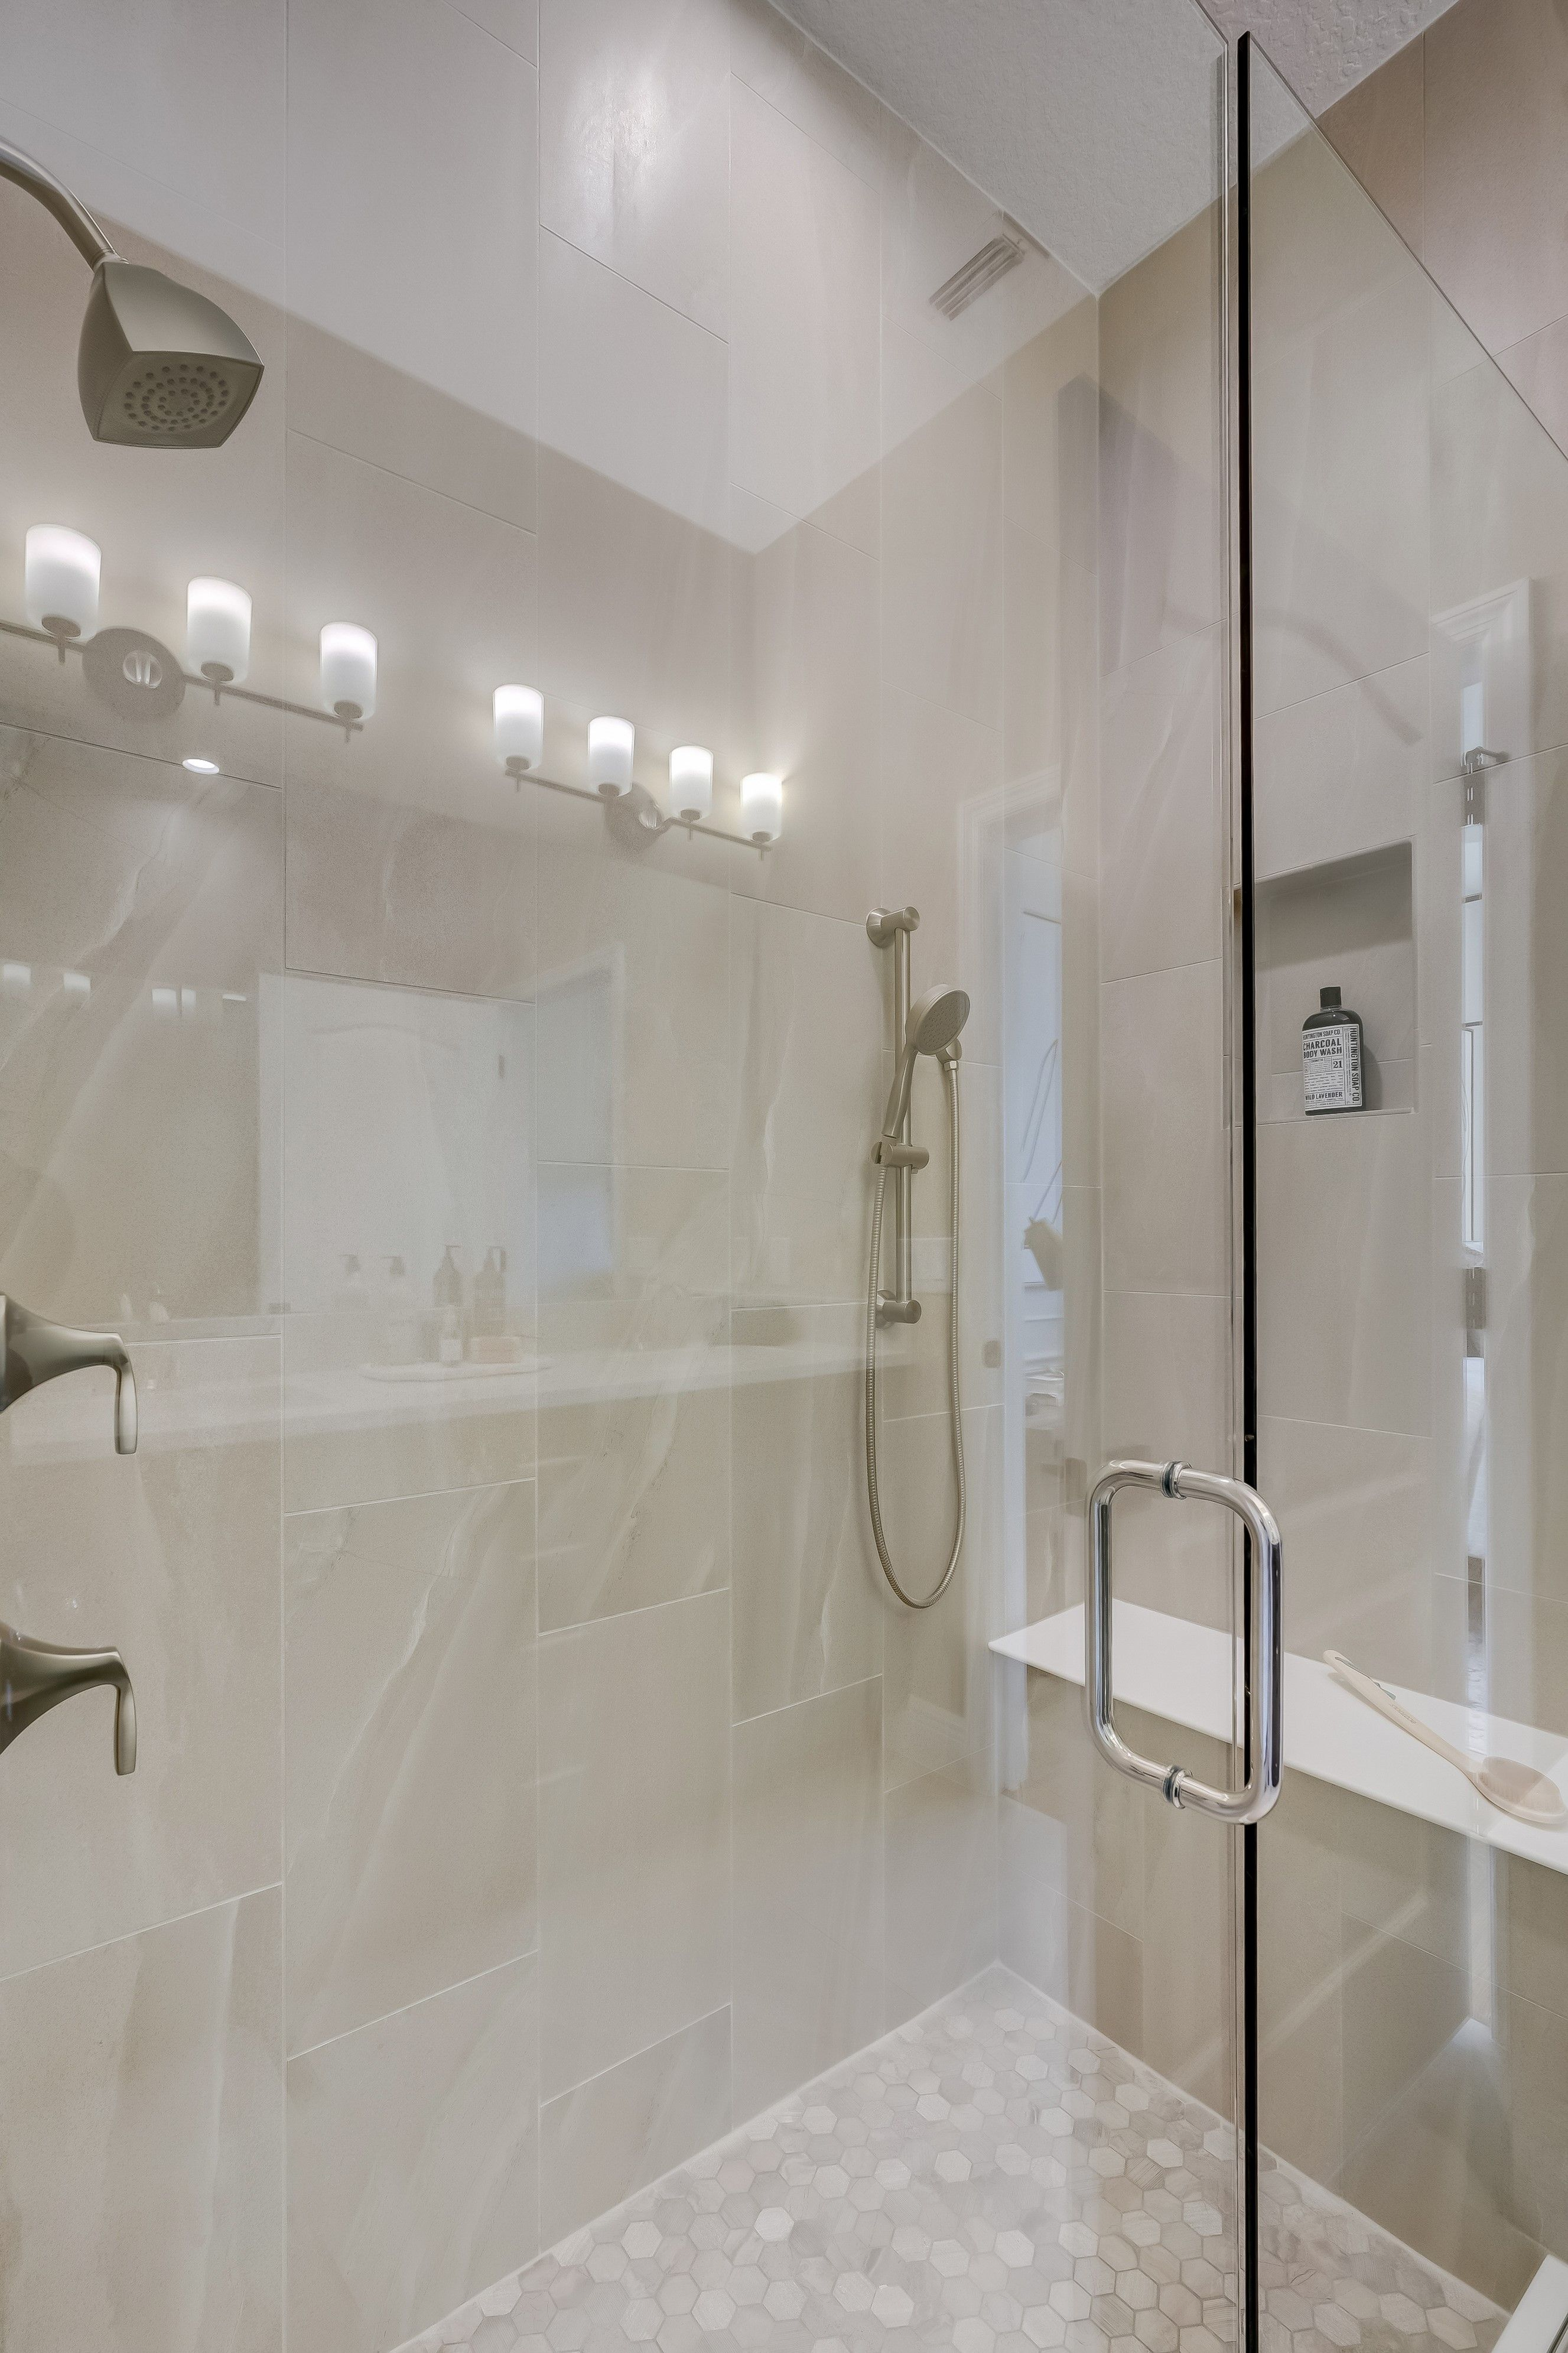 Bathroom featured in the Emerie By K. Hovnanian's® Four Seasons in Orlando, FL